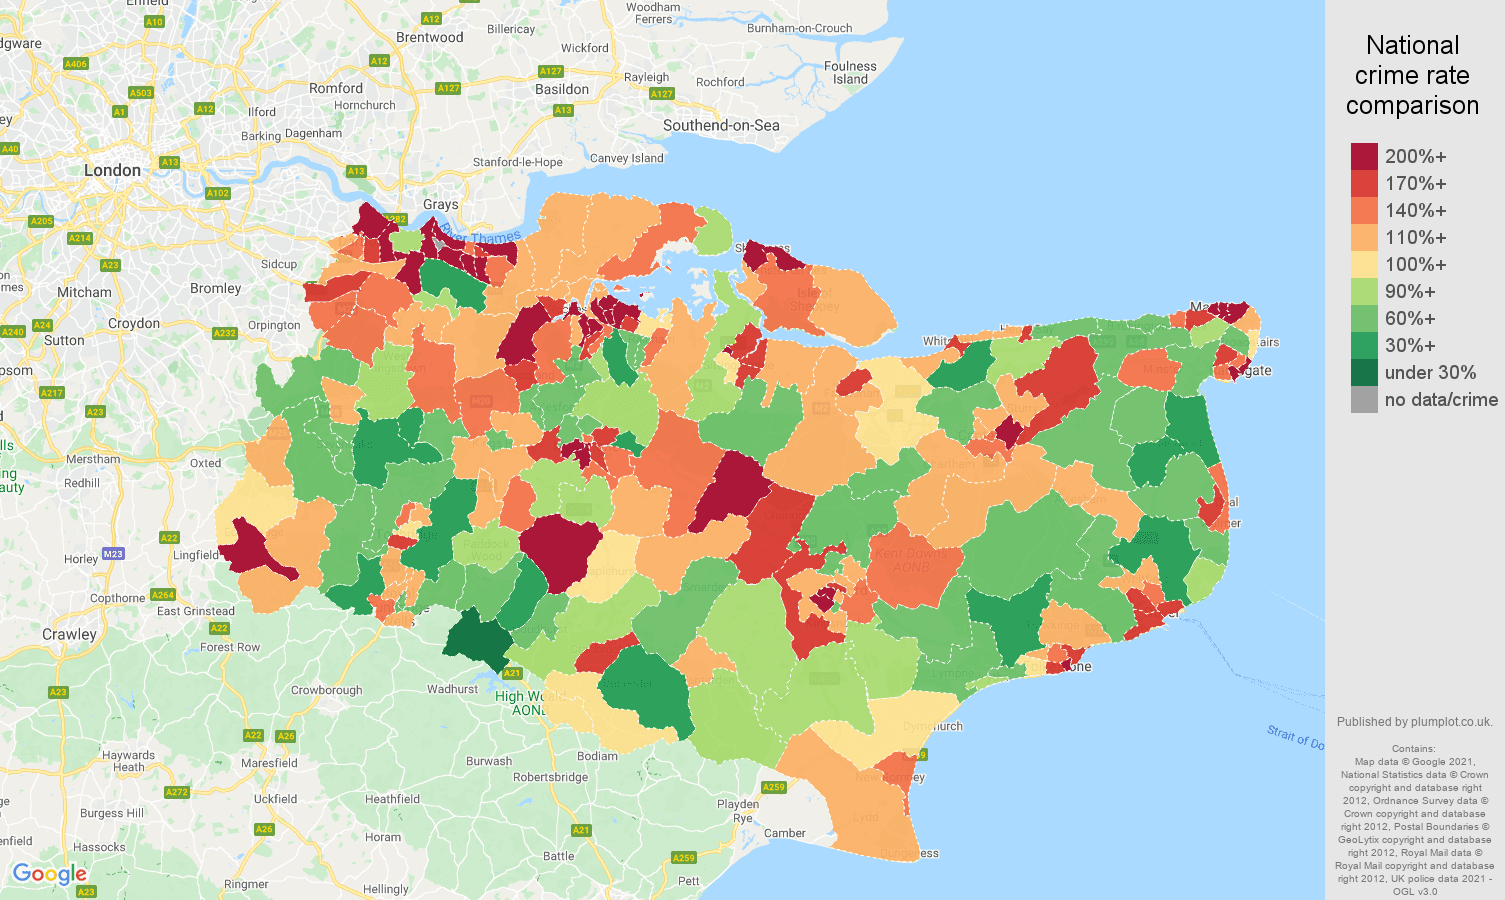 Kent criminal damage and arson crime rate comparison map